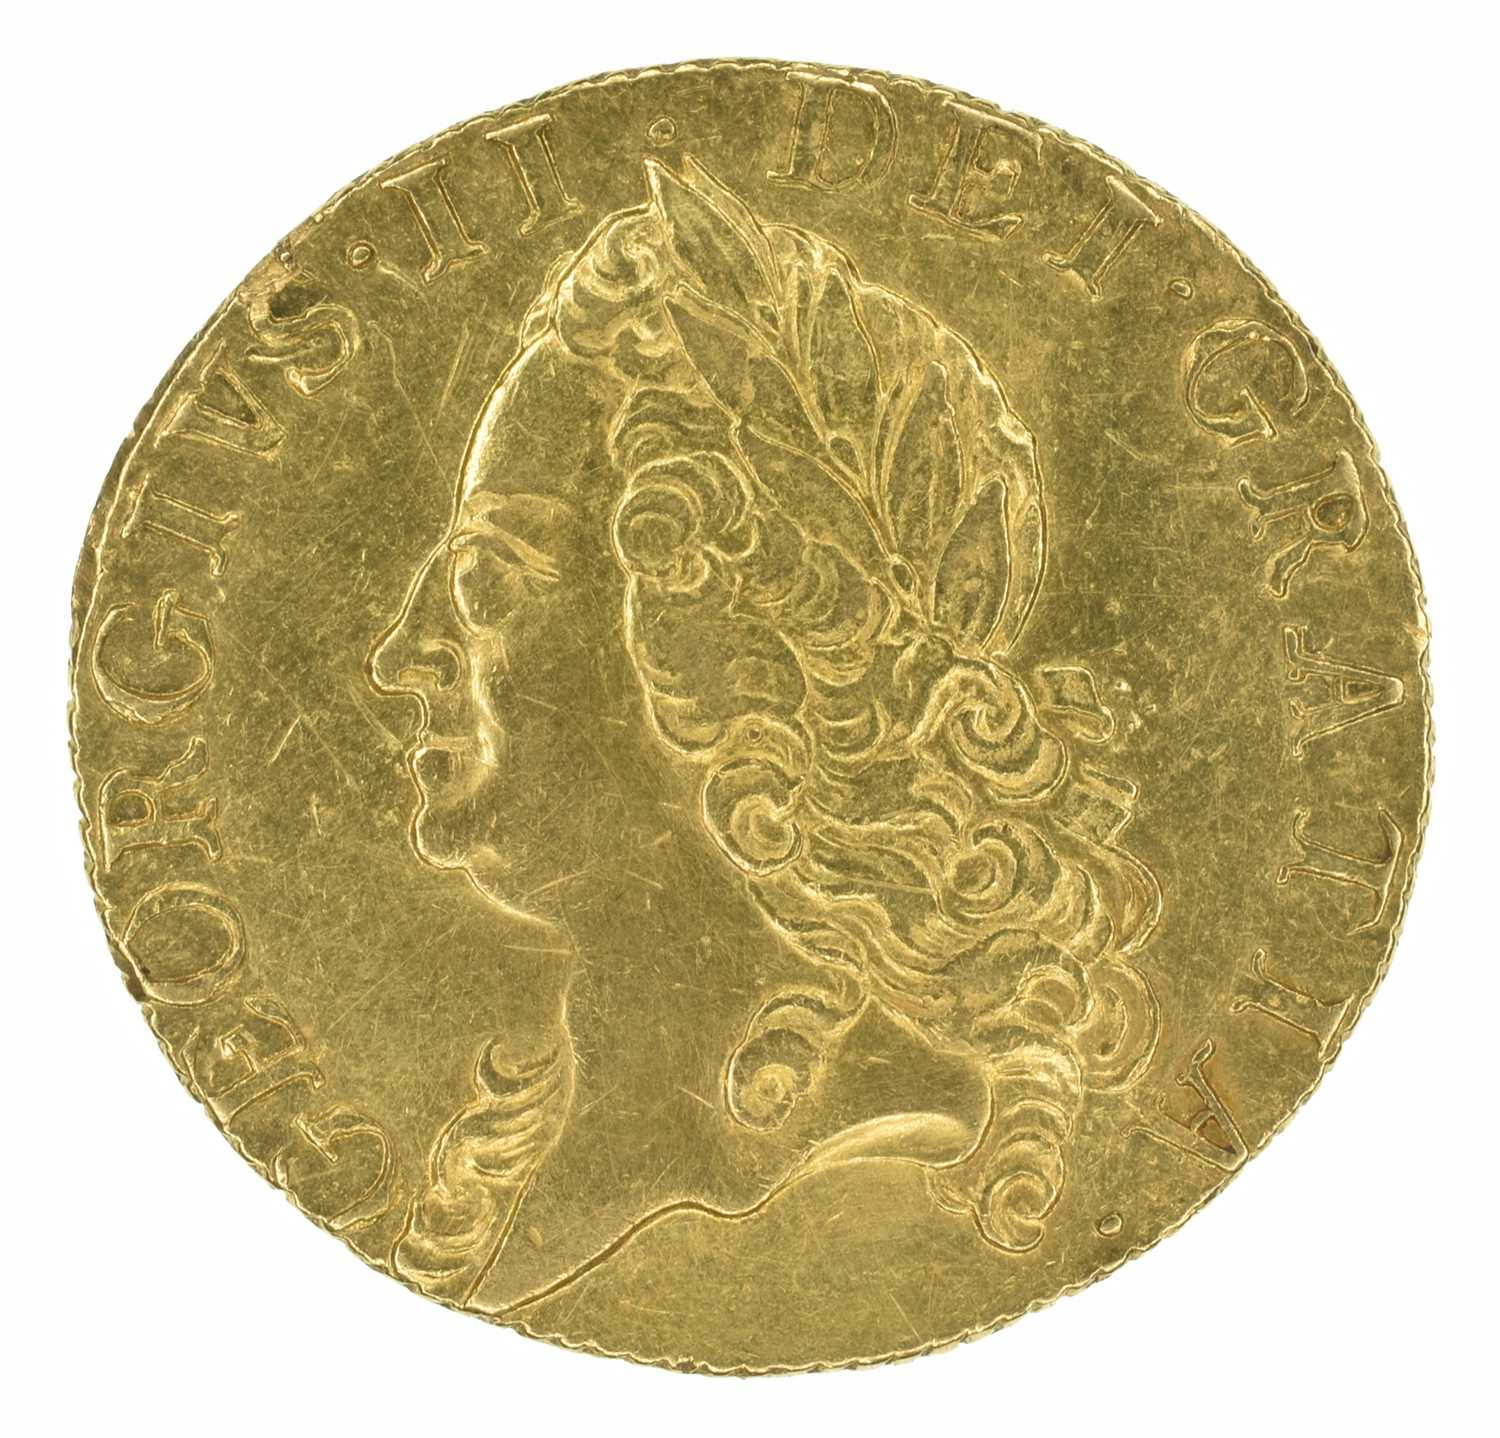 Lot 43 - King George II, Guinea, 1760.